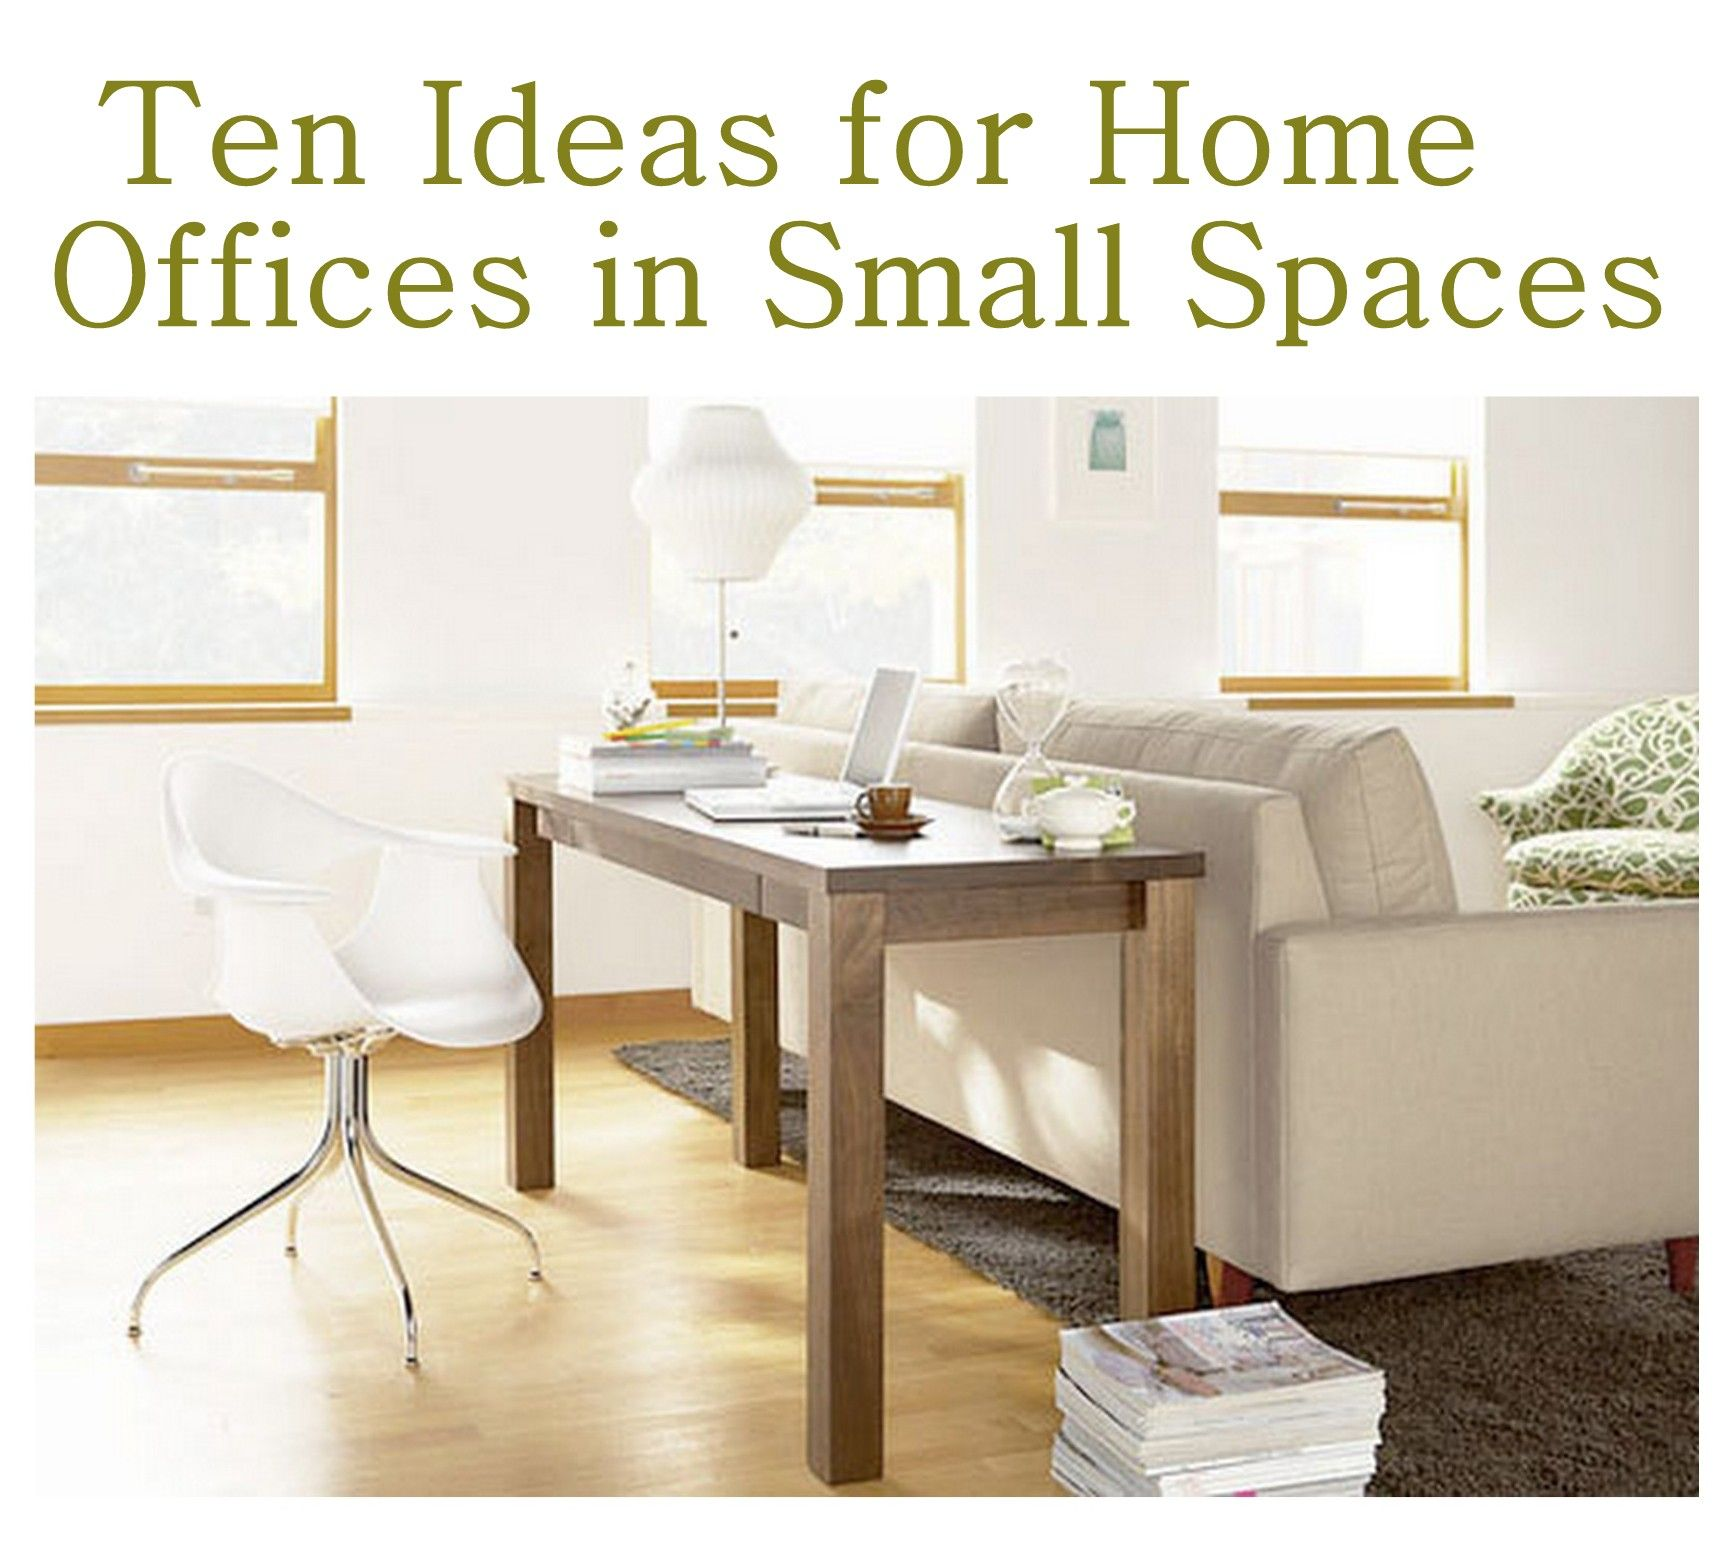 10 Ideas For Home Offices For Small Spaces Futura Home Decorating Desk In Living Room Living Room Office Home